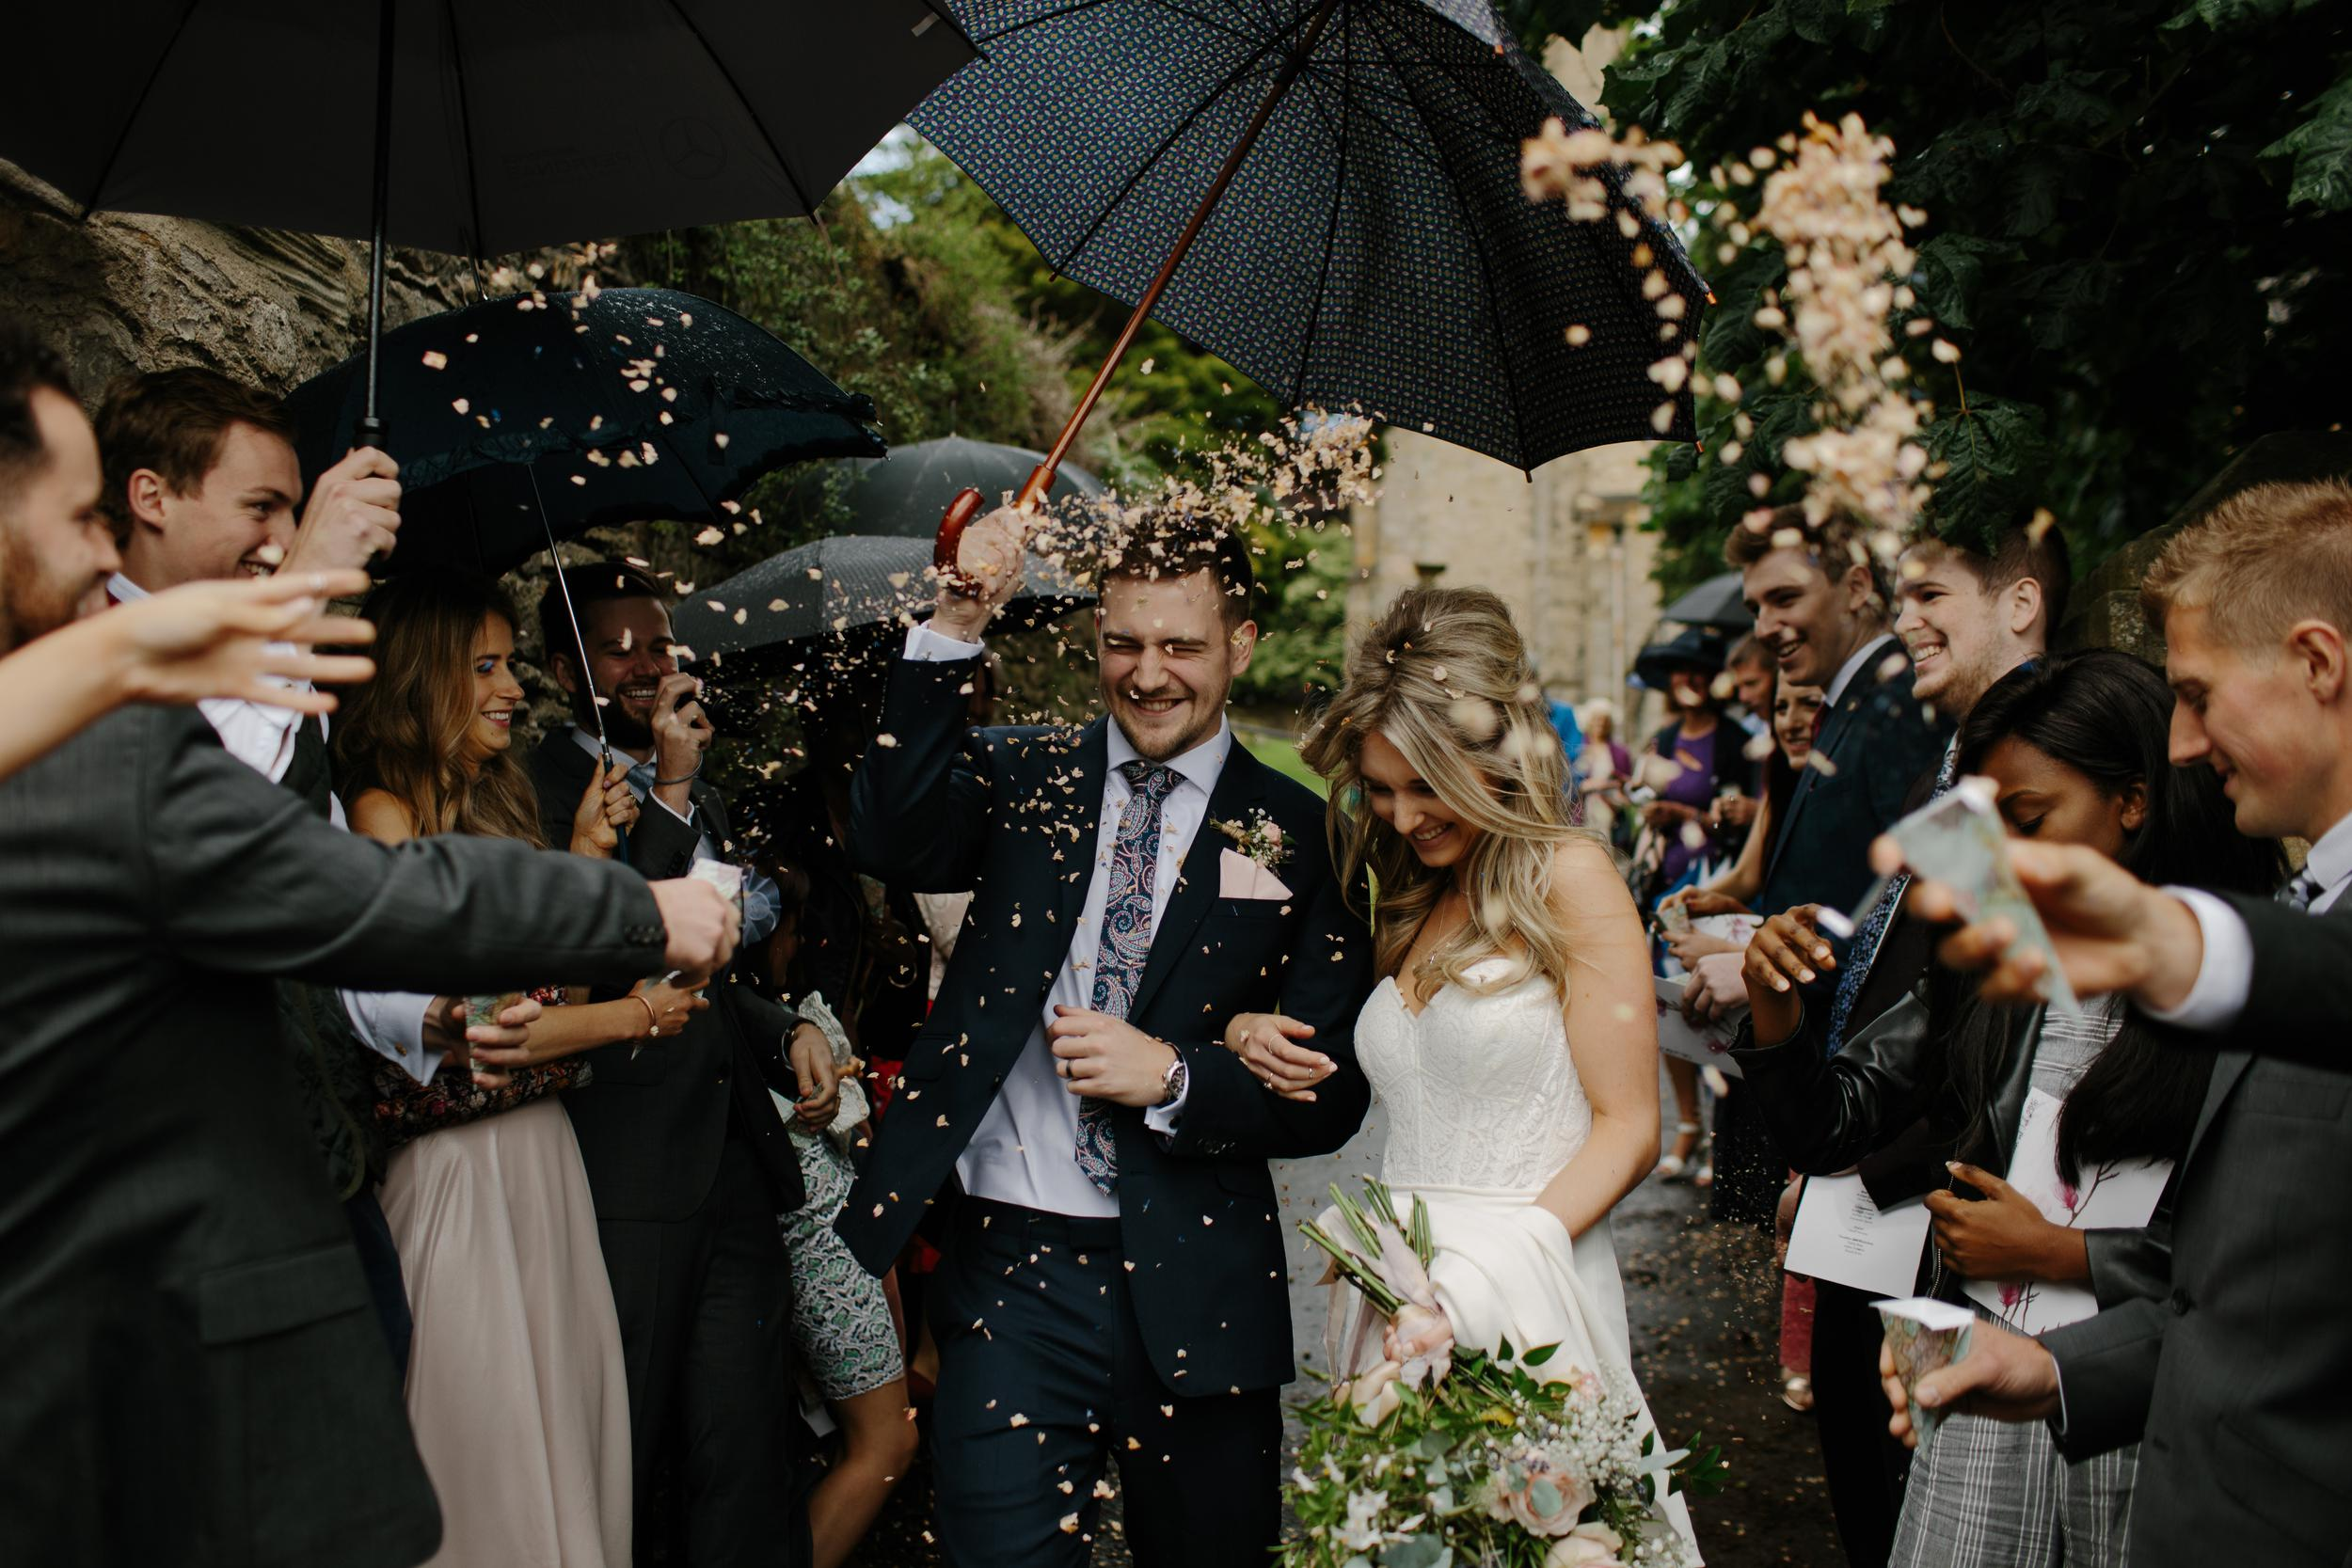 bride and groom on their wedding day with their guests